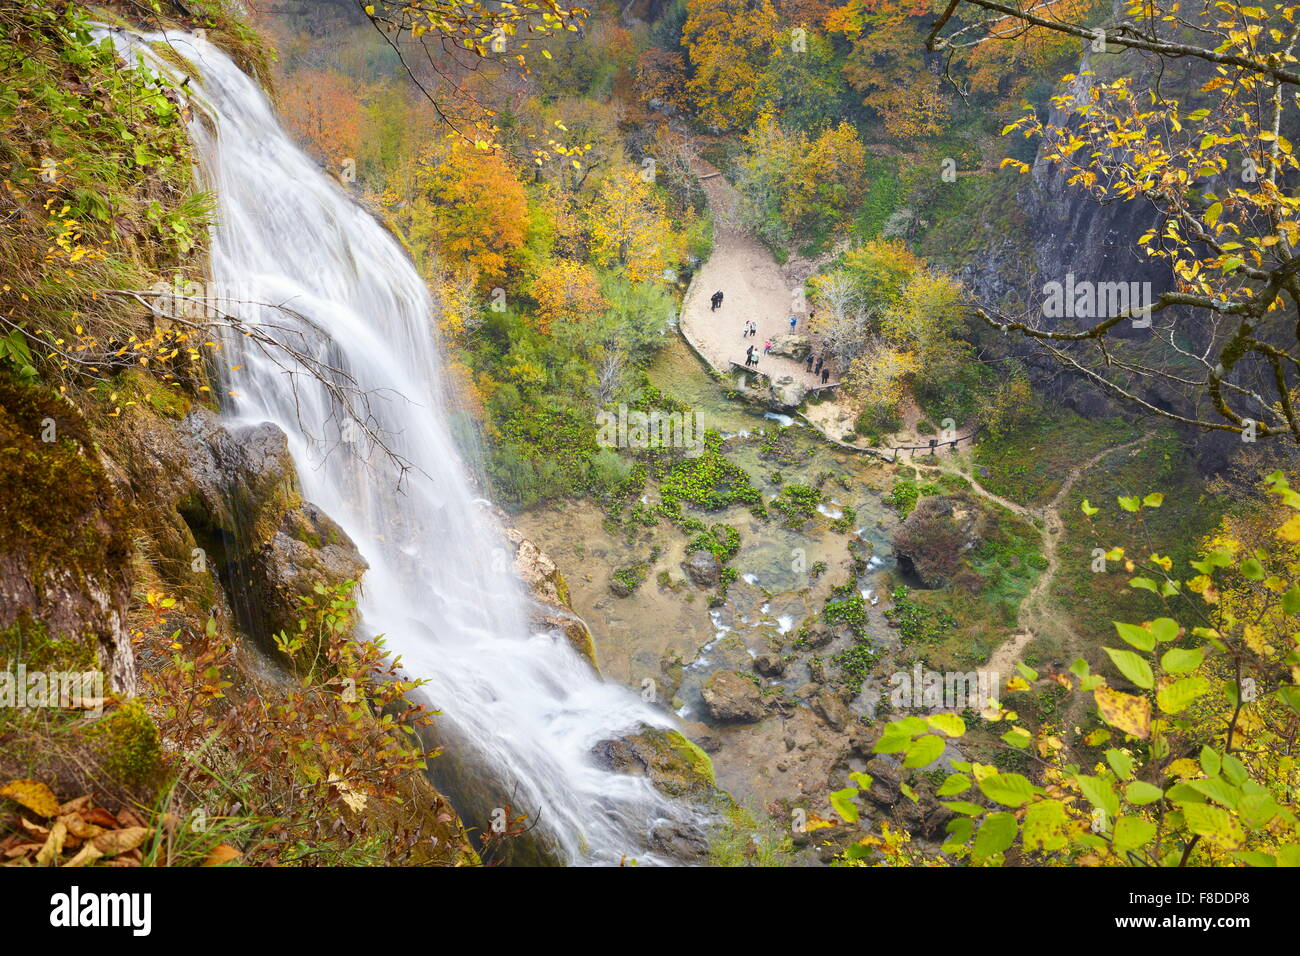 Cascade dans le parc national des Lacs de Plitvice, Croatie, l'UNESCO Photo Stock